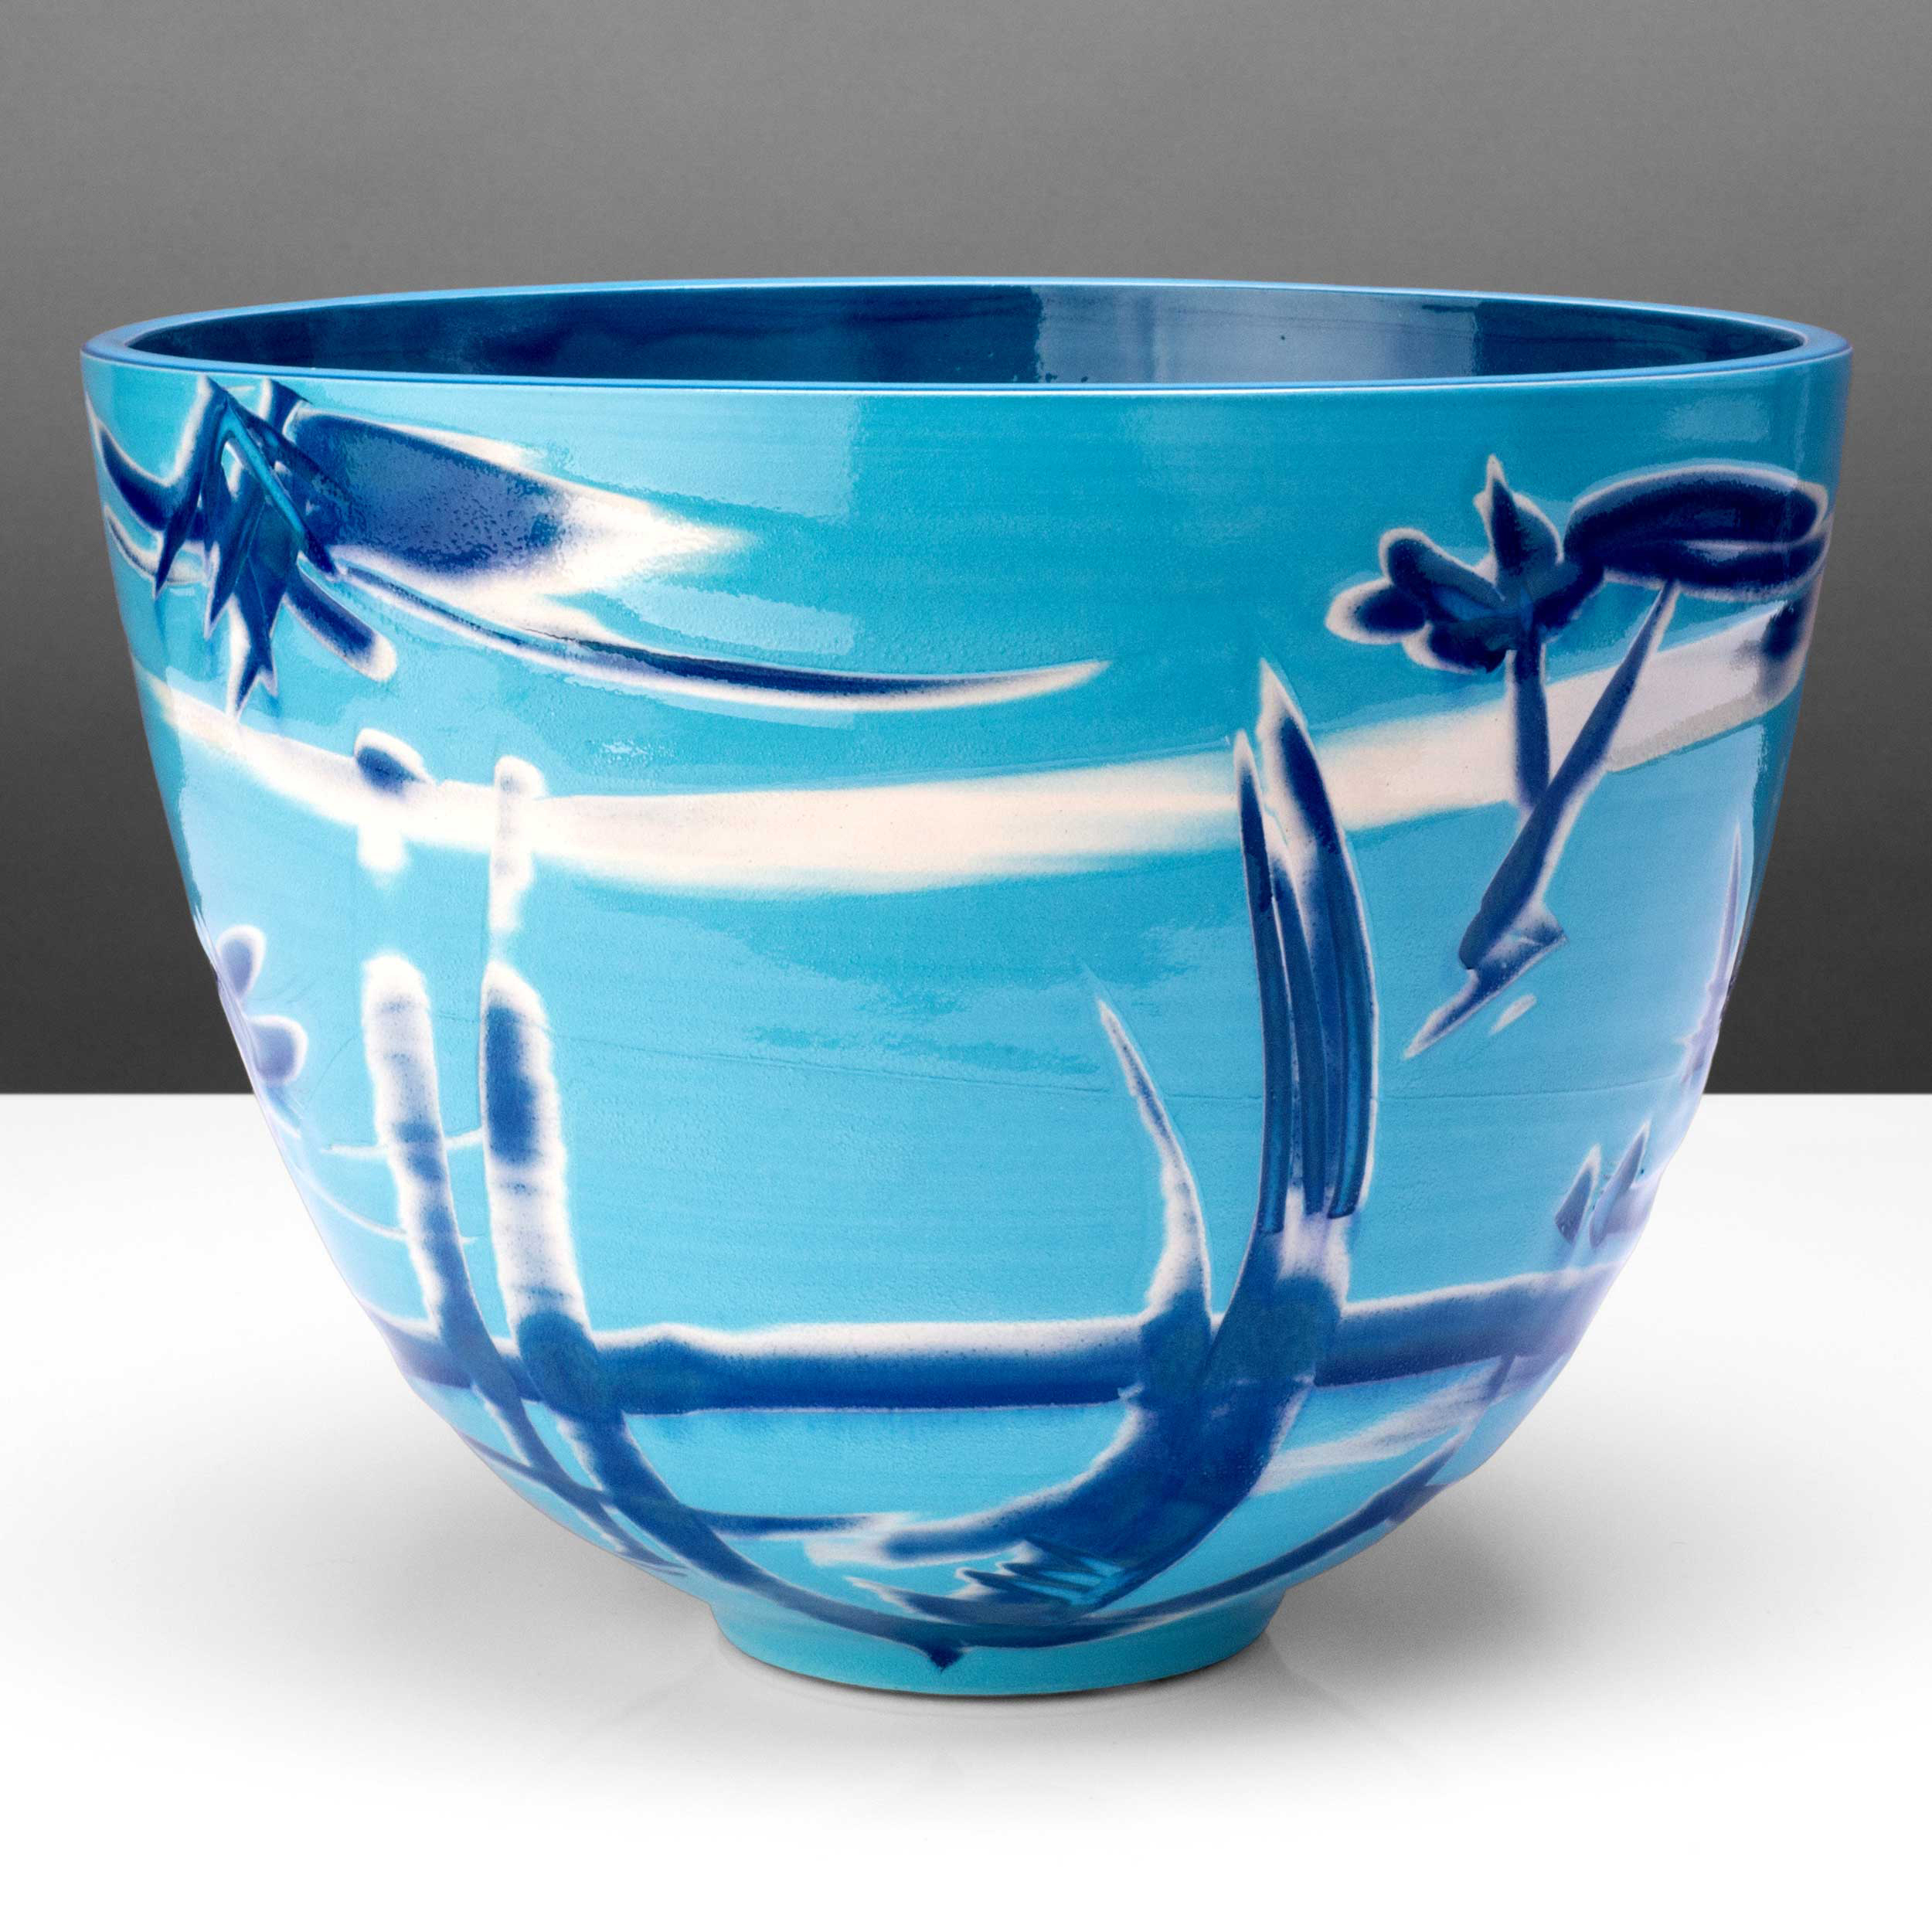 Blue Turquoise Deep Ceramic Bowl by Rowena Gilbert